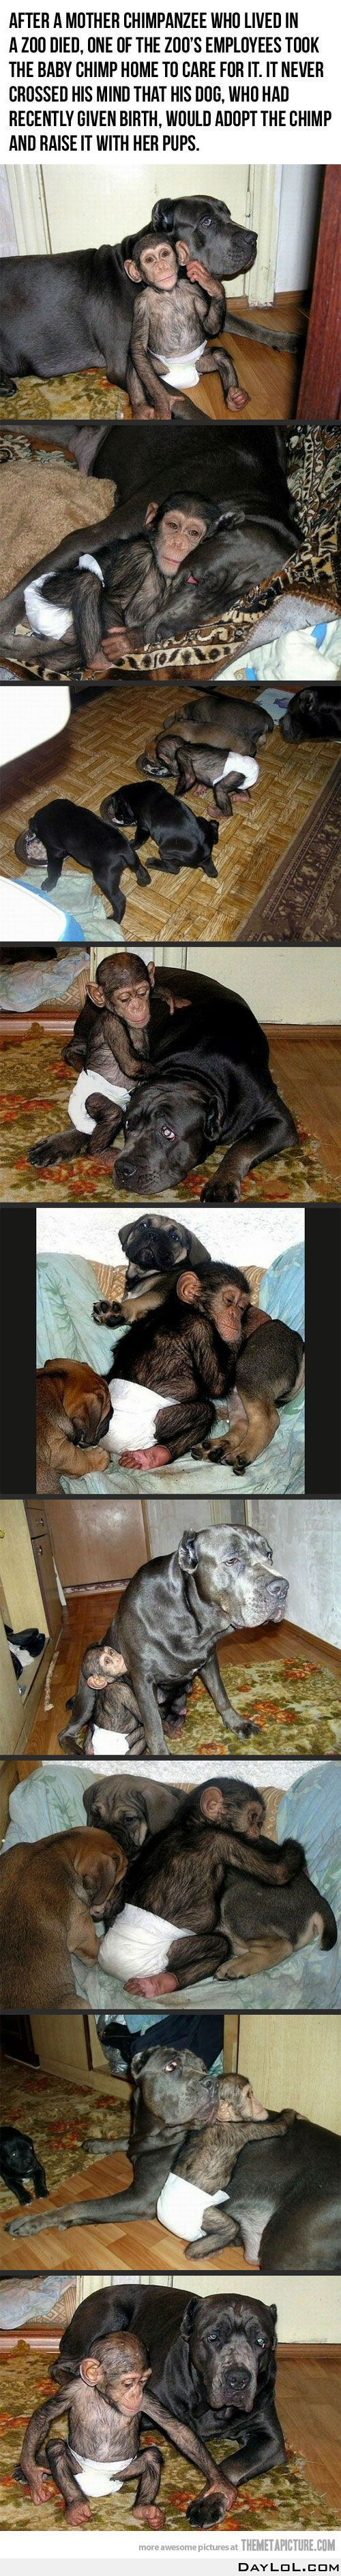 Baby monkey adopted by a dog - what a lovely story.